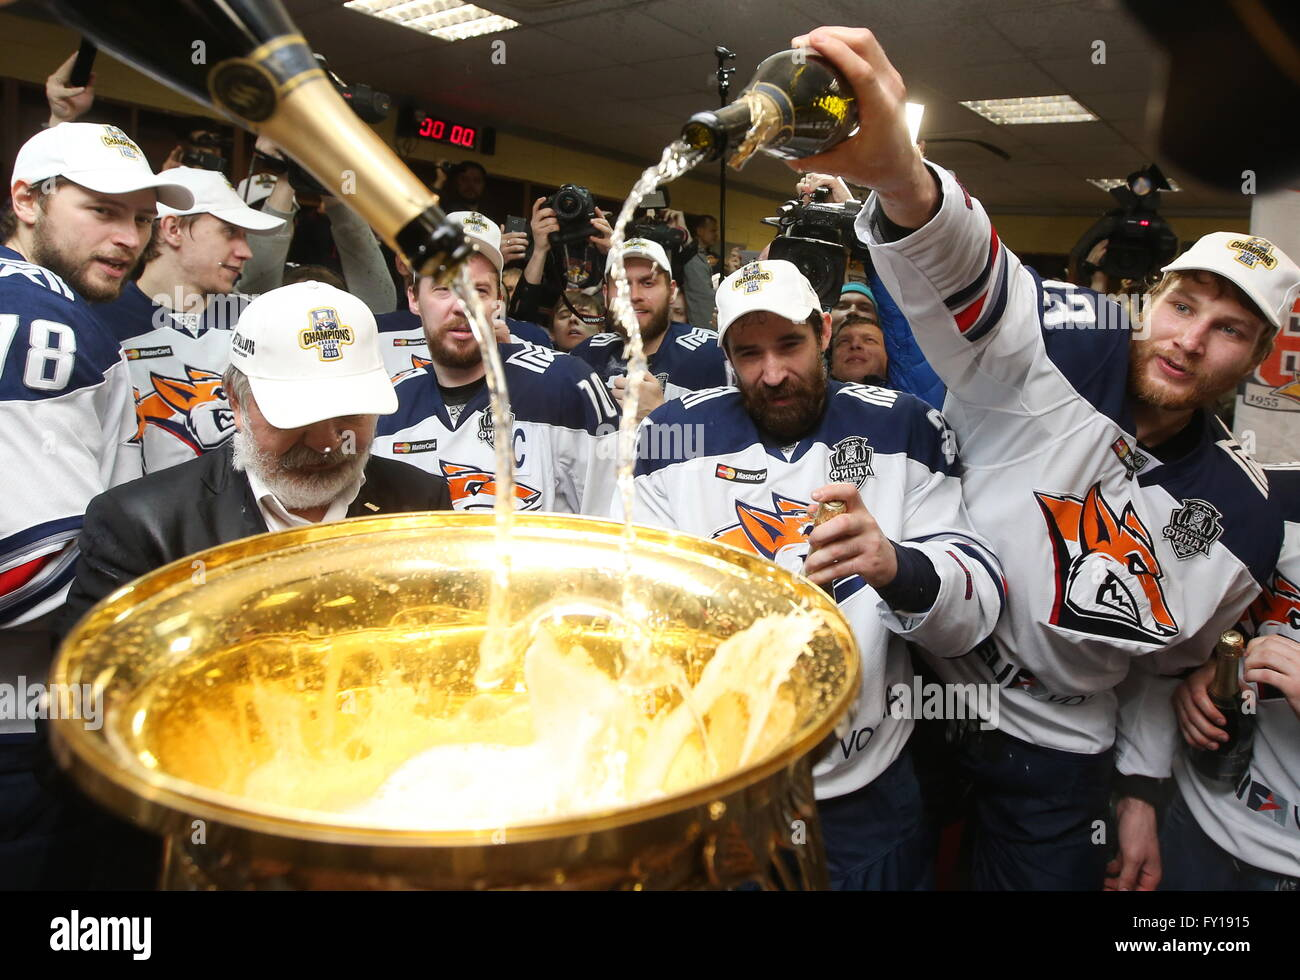 Moscow, Russia. 19th Apr, 2016. HC Metallurg Magnitogorsk vice president Gennady Velichkin (L front) and Metallurg's - Stock Image